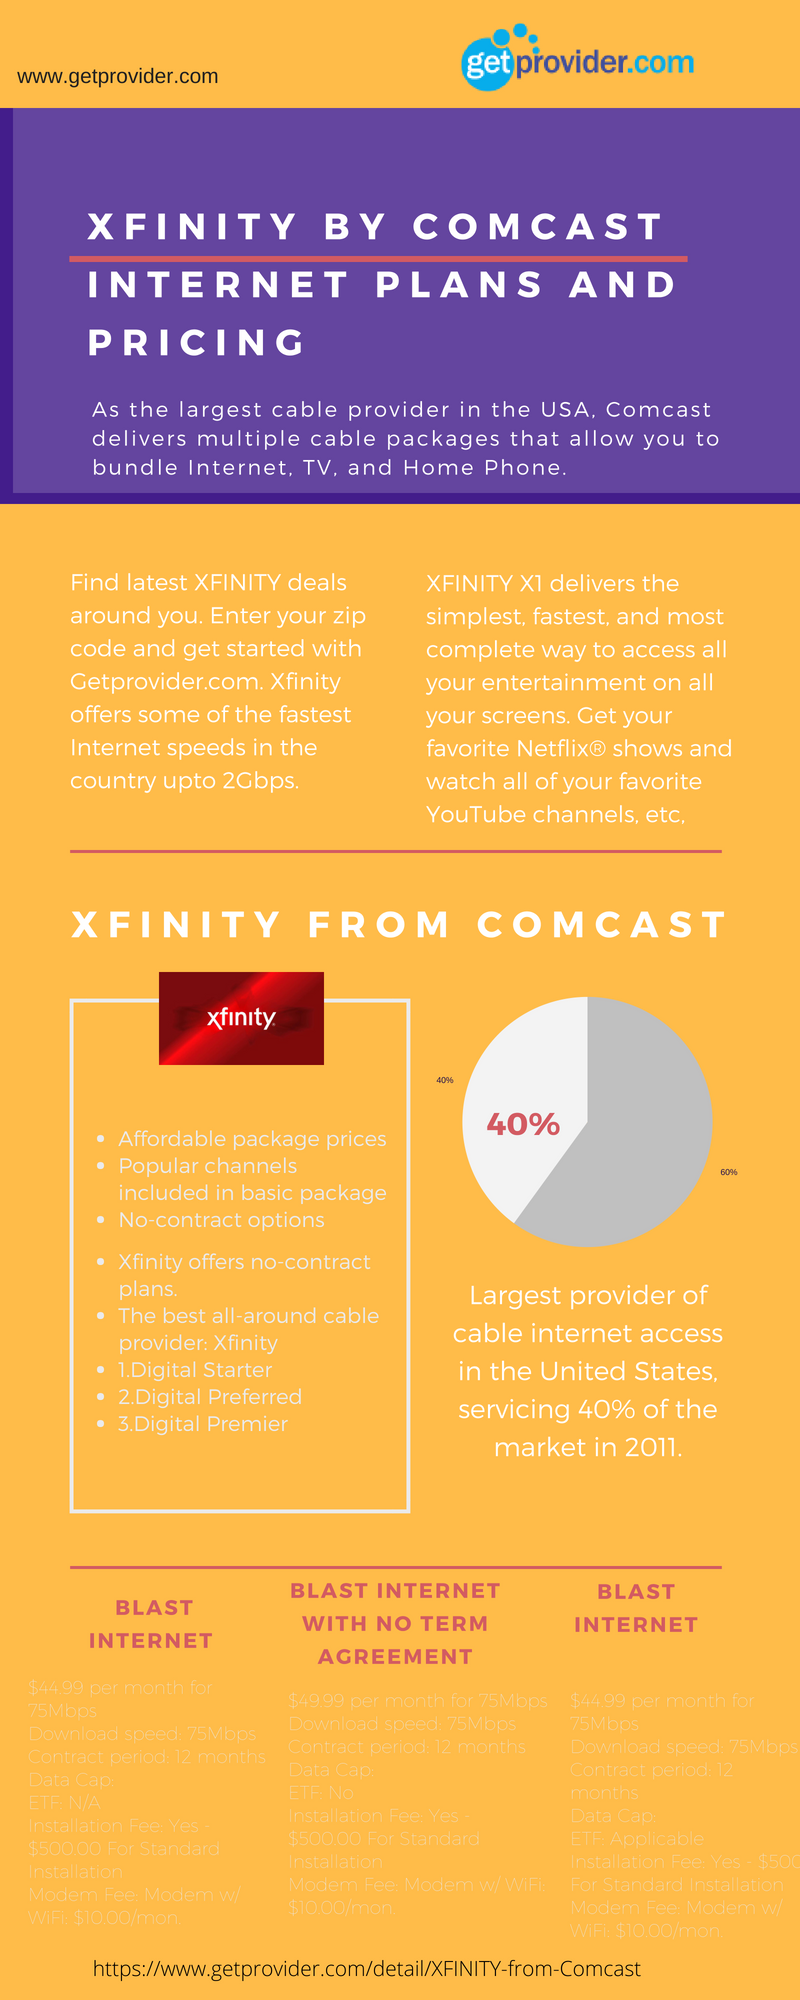 As the largest cable provider in the USA, Comcast delivers